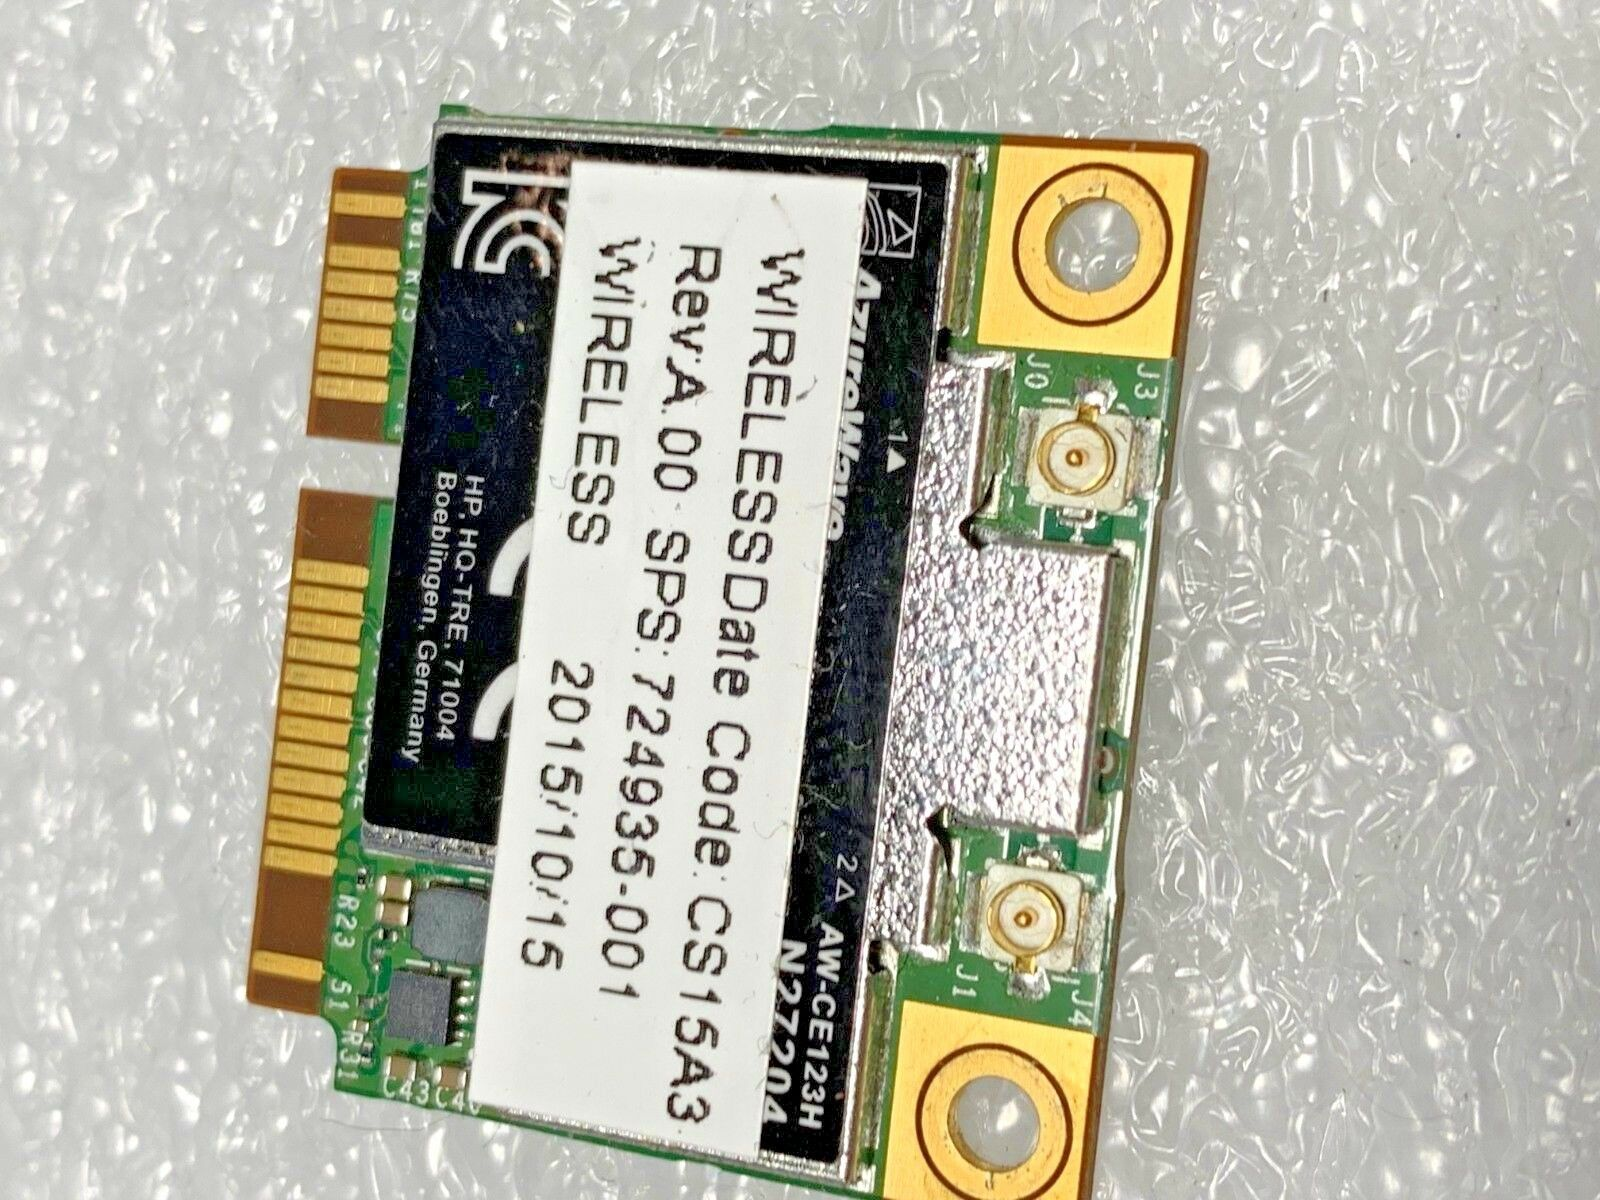 HP MINI 110-1117NR NOTEBOOK BROADCOM DECODER CARD DRIVER DOWNLOAD